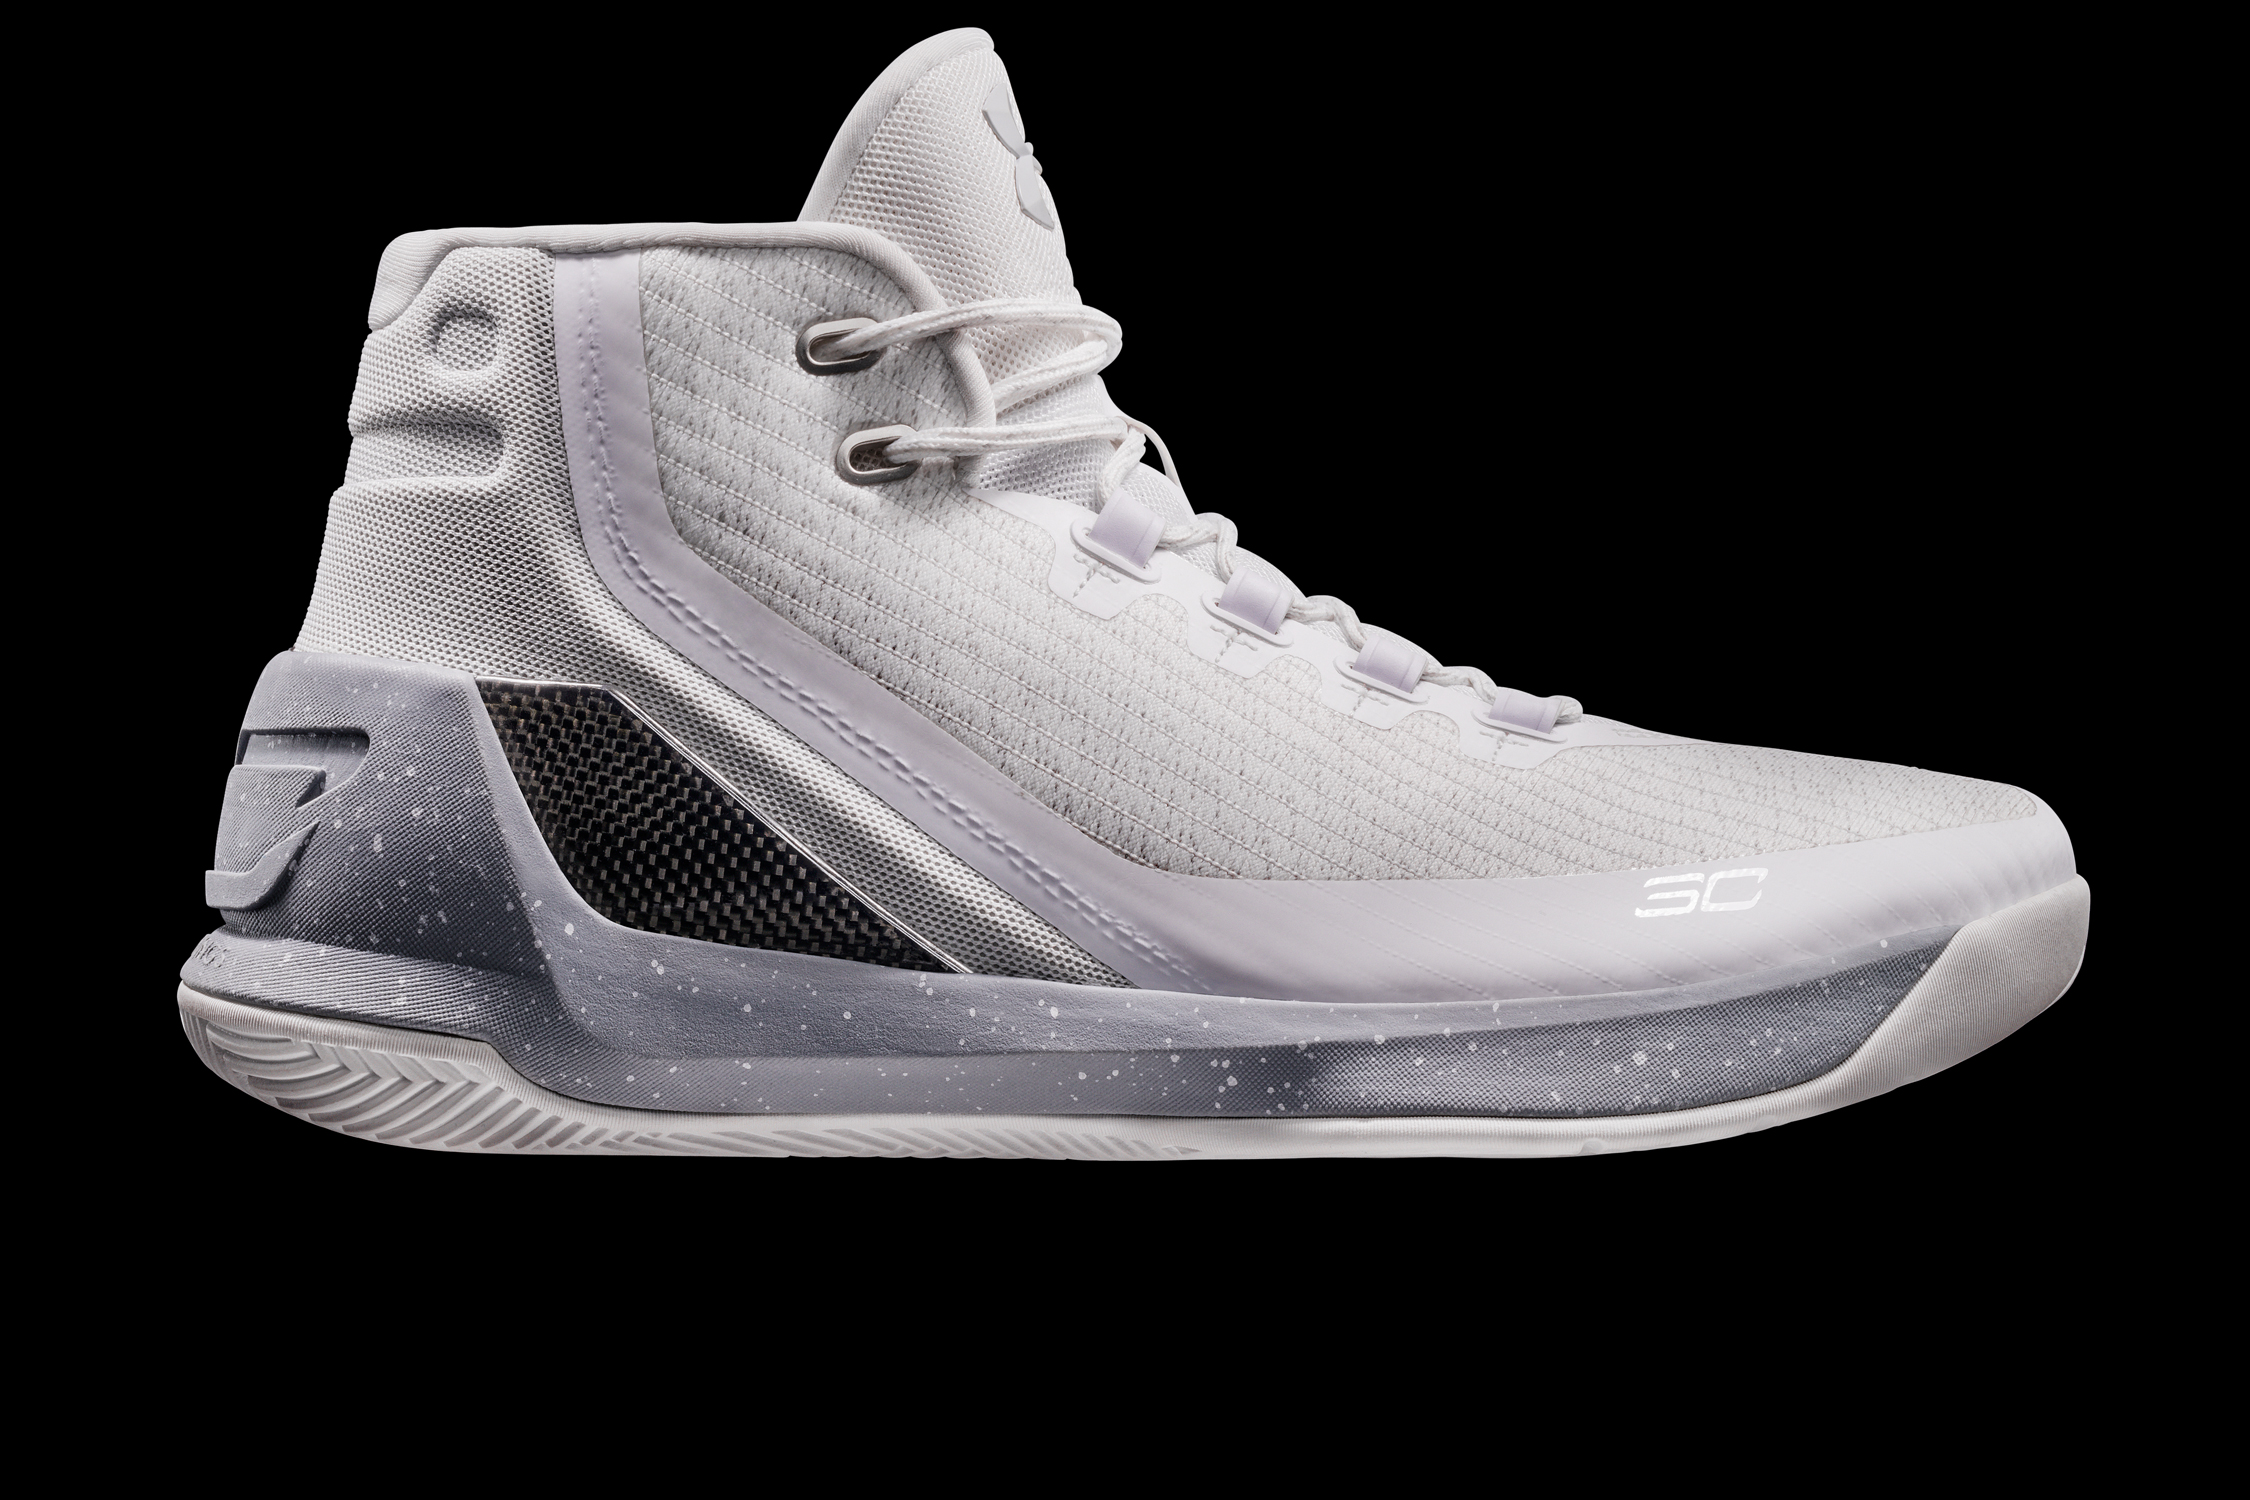 The 'Raw Sugar' to be worn by Stephen Curry pays homage to his sweet jumpshot.